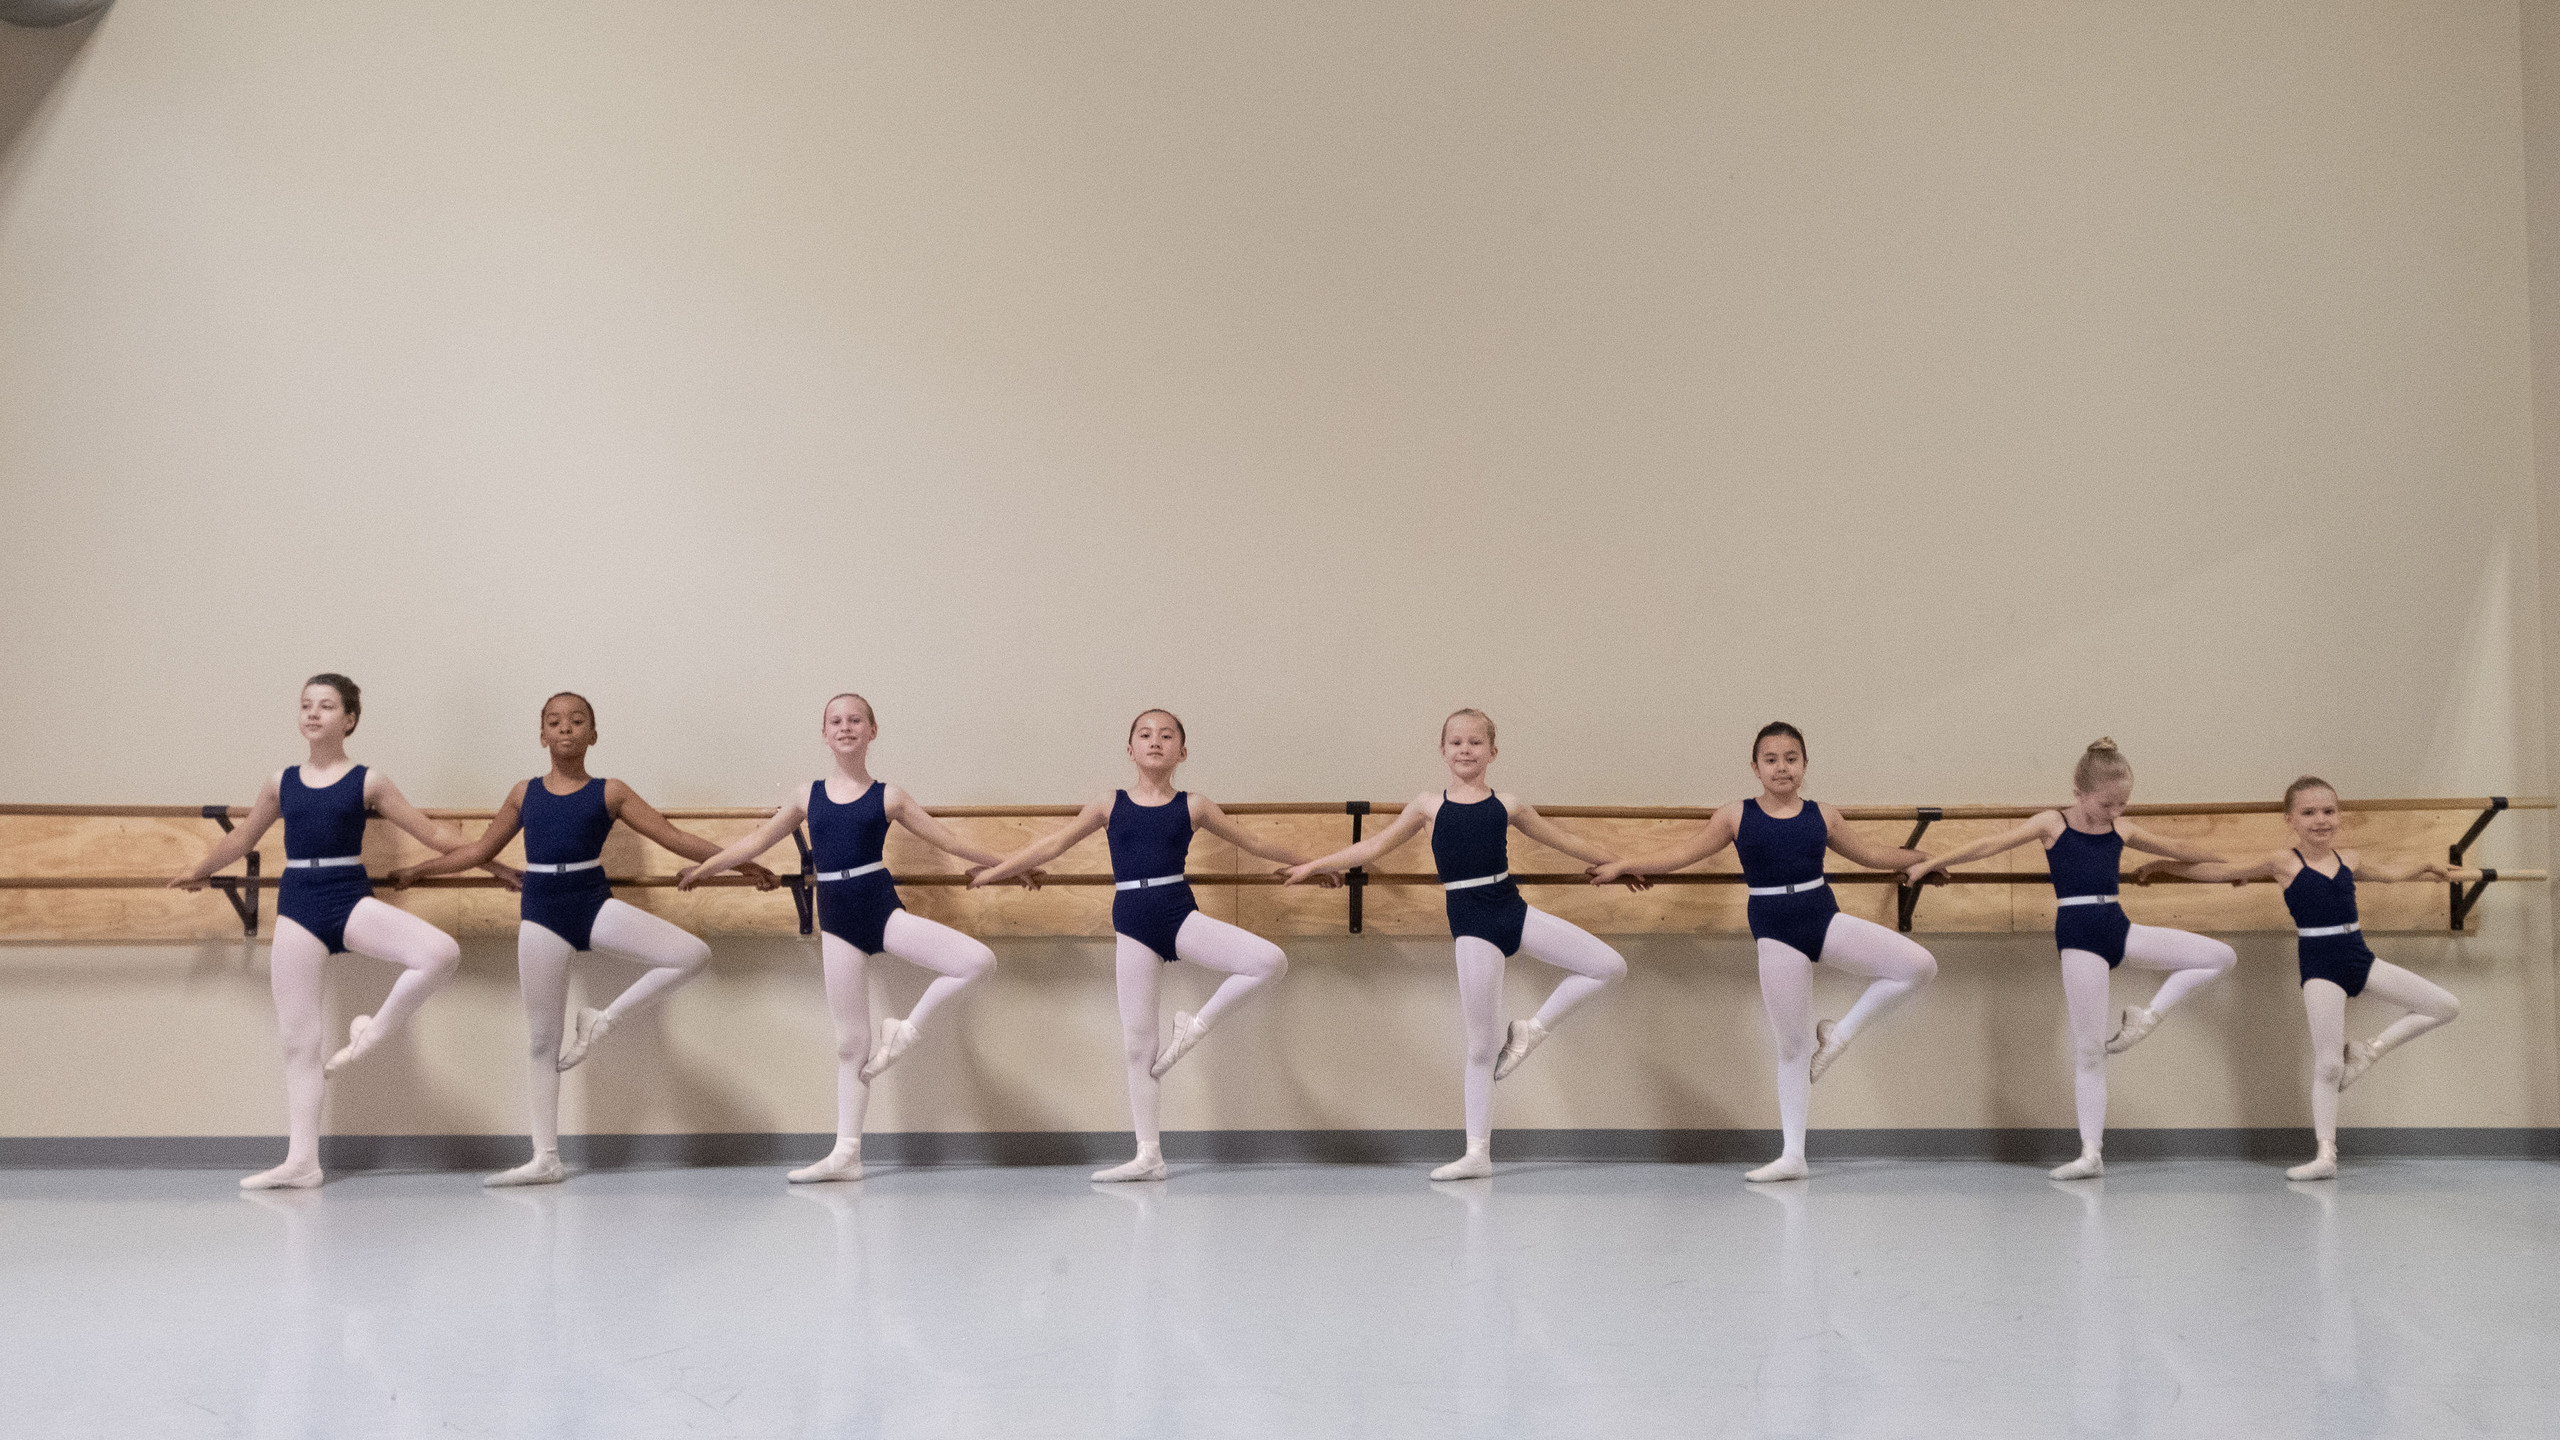 Lineup at the barre